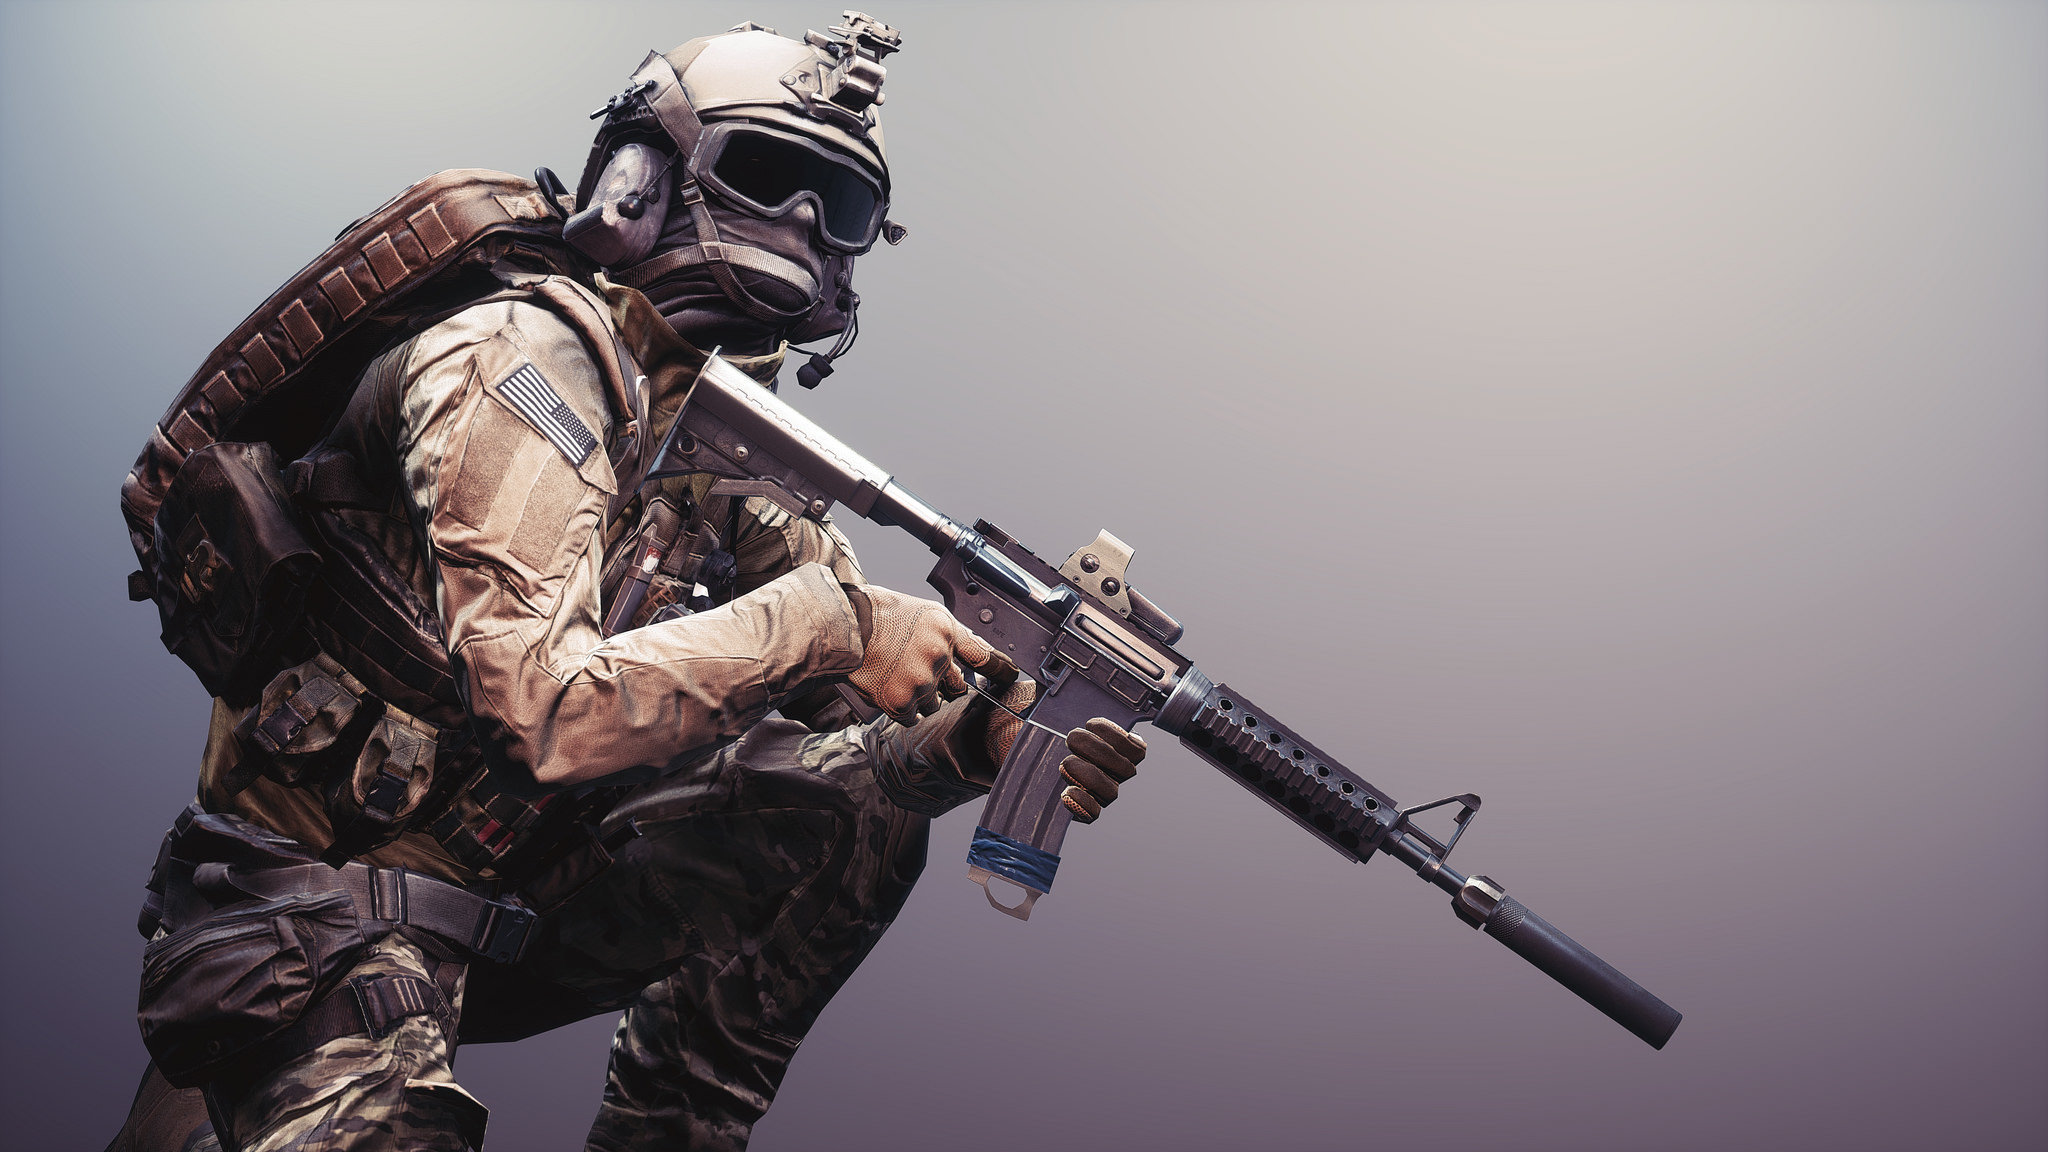 Best Battlefield 4 Wallpaper ID498300 For High Resolution Hd 2048x1152 PC